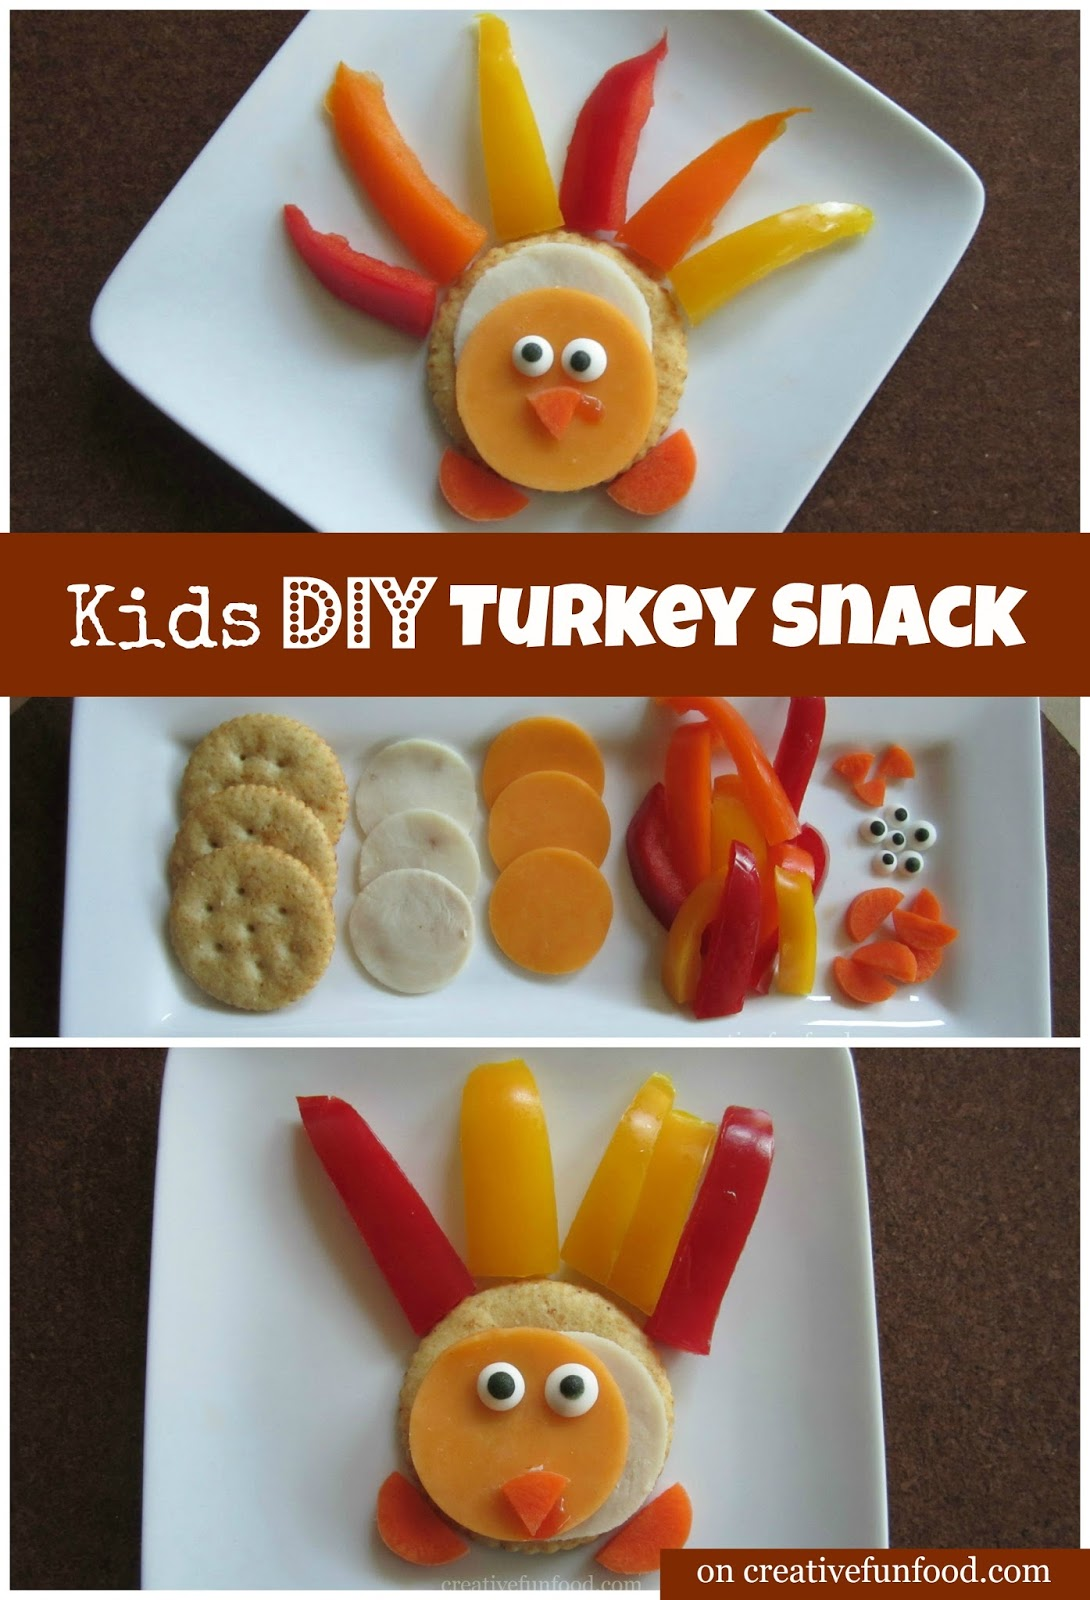 Creative Fun For All Ages With Easy Diy Wall Art Projects: Creative Food: Kid's DIY Turkey Snack